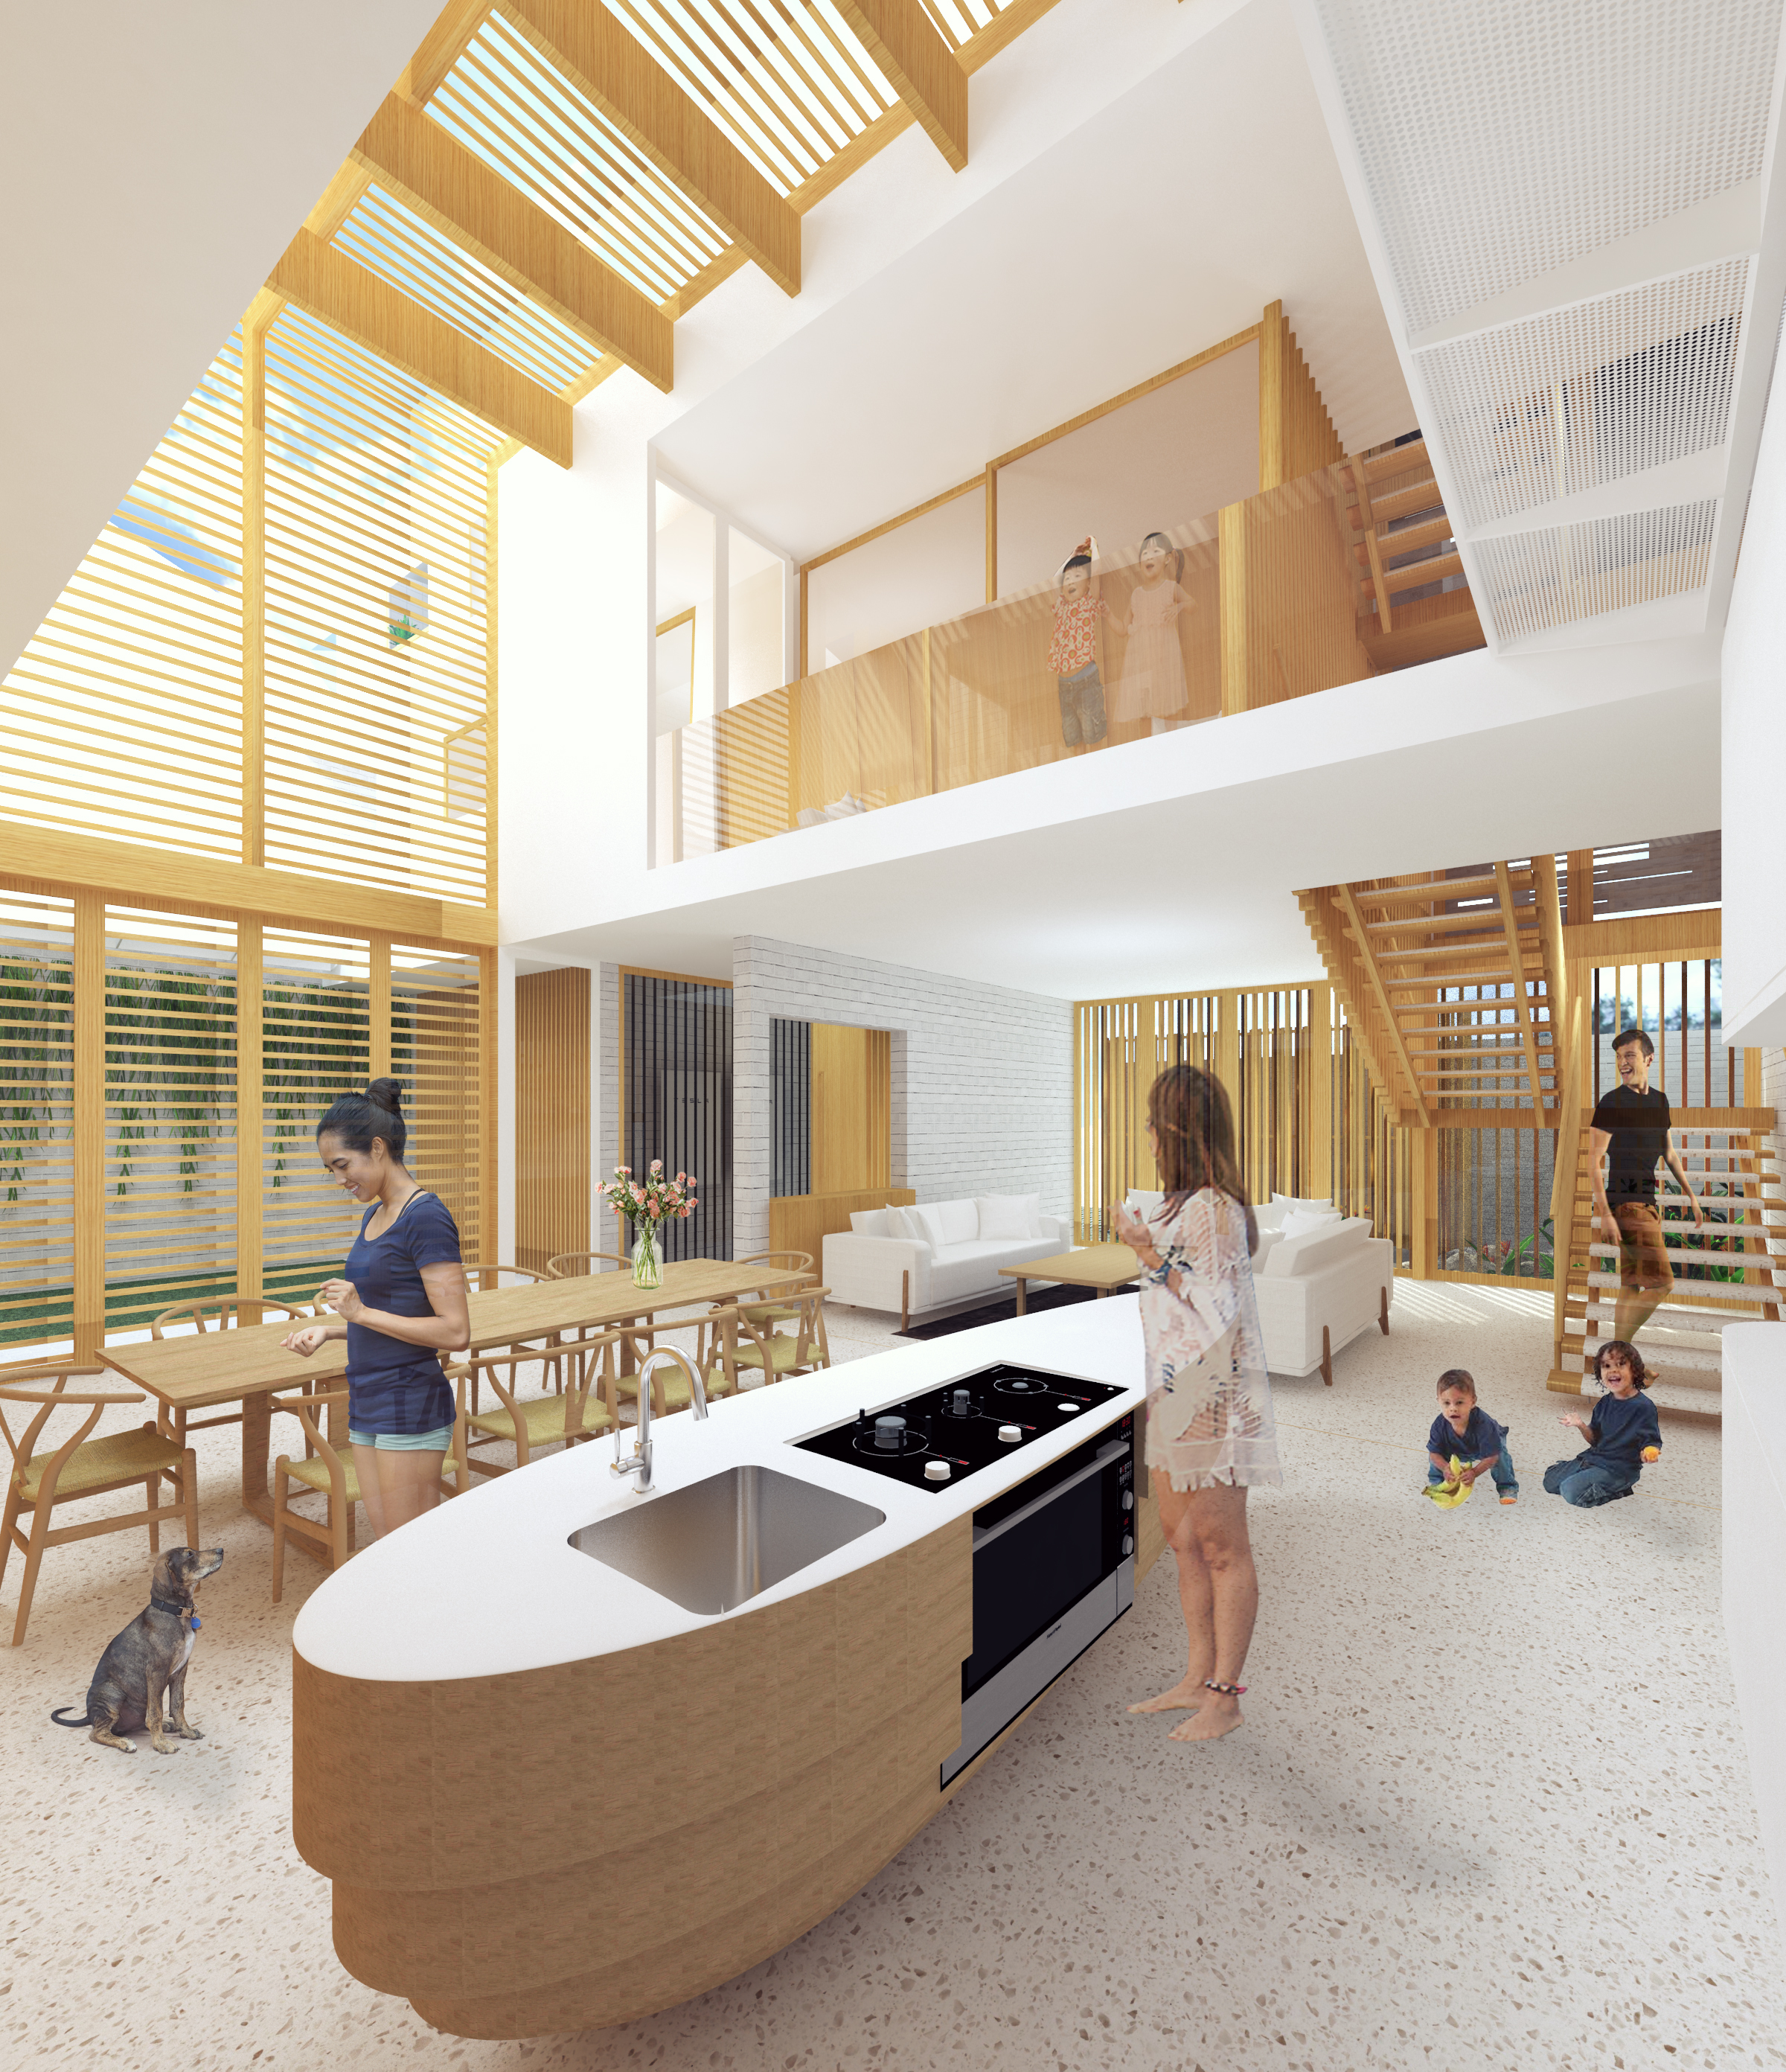 Rendering - The central atrium space gives opportunity for all generations grandparents, parents, children and grand children to come together and enjoy family time while also not imposing itself on the private spaces of the home.